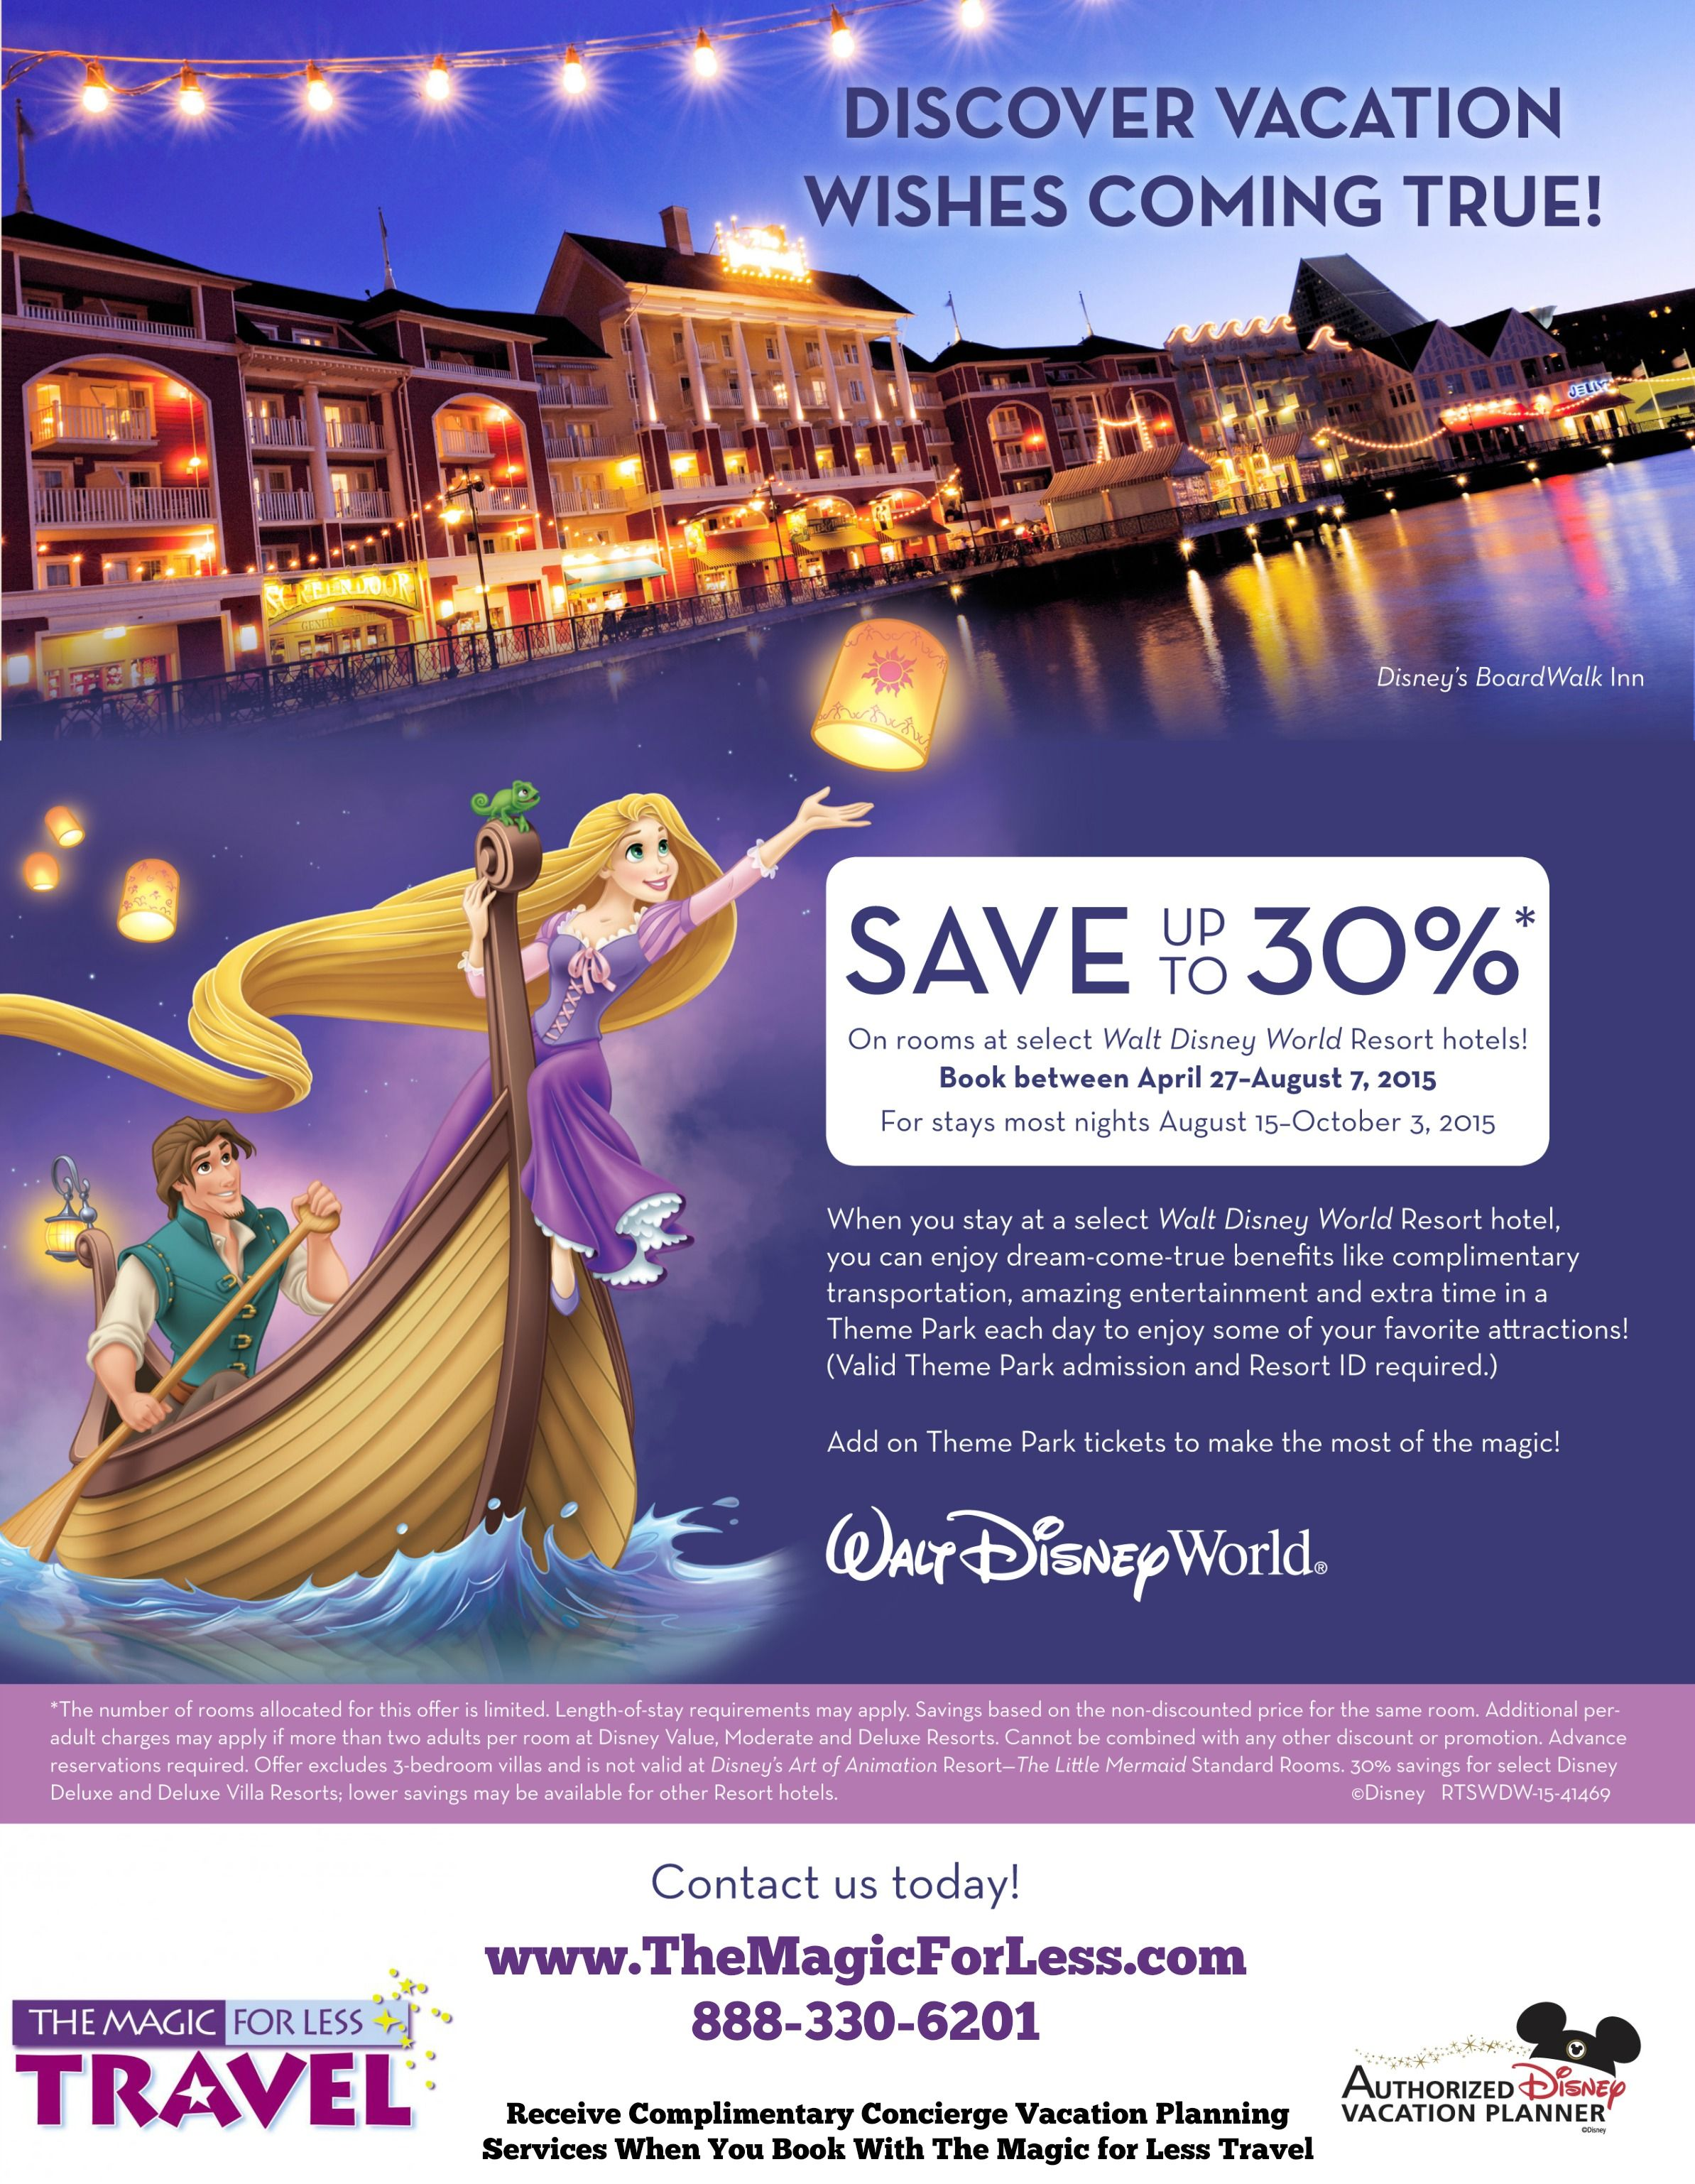 Special Offers and Discounts for Walt Disney World